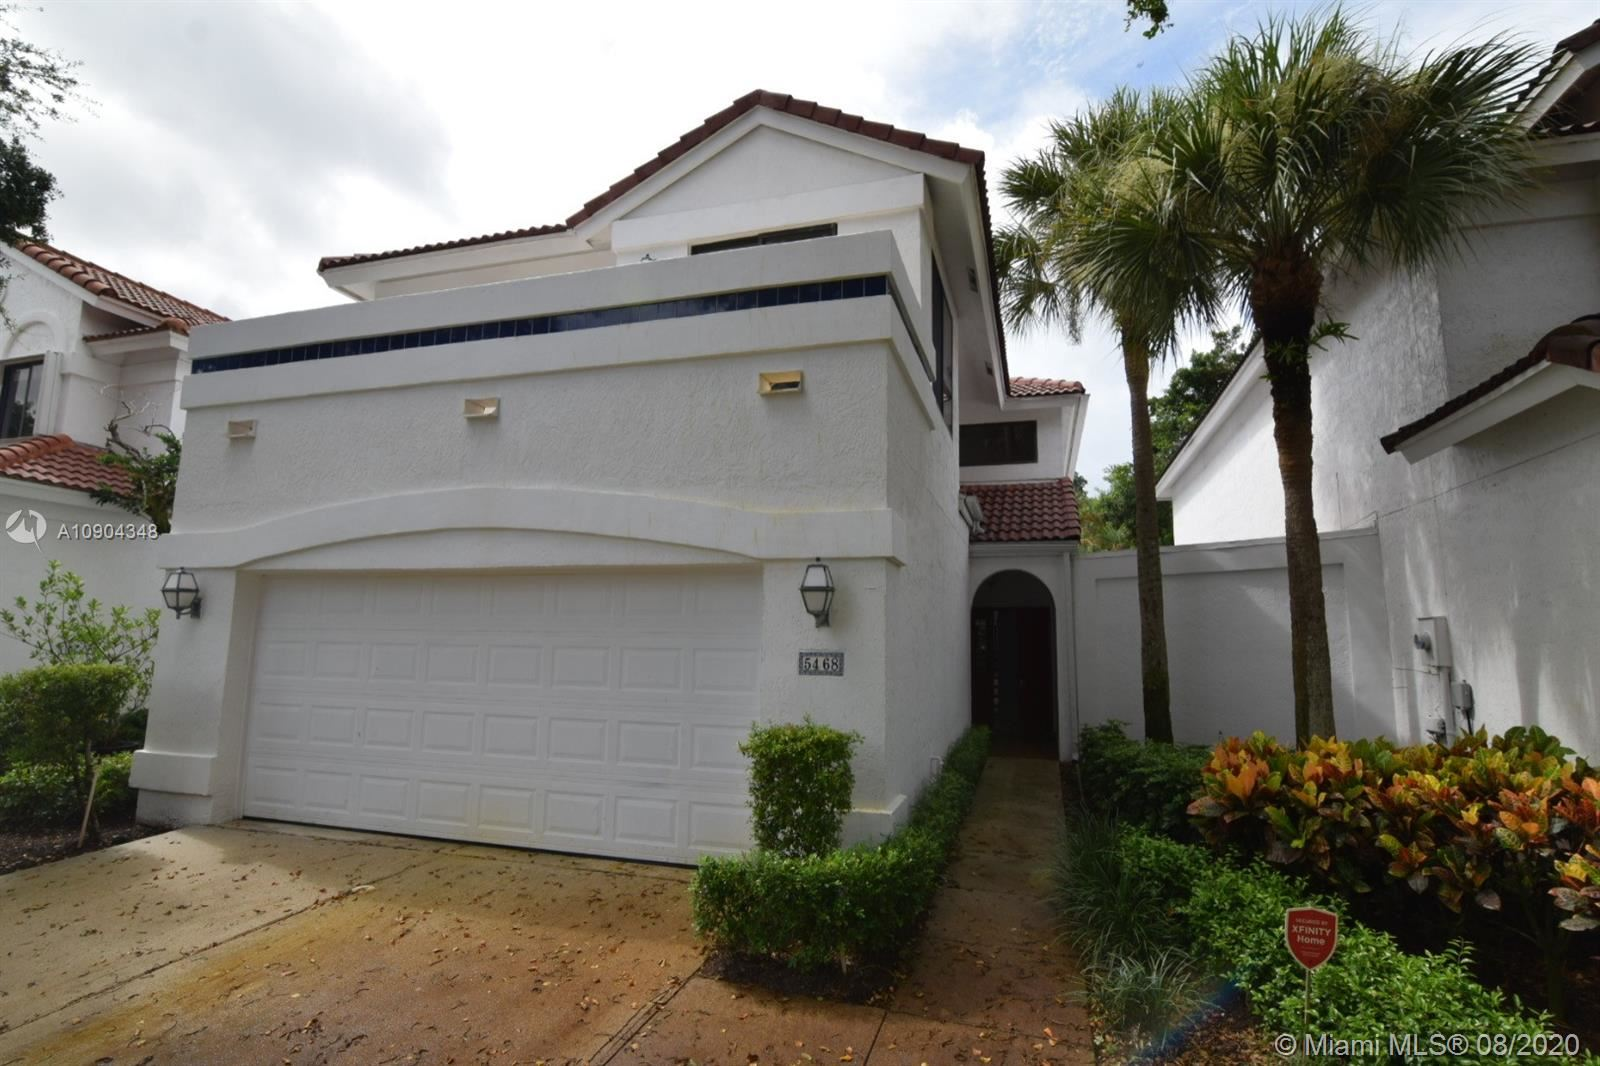 5468 FOX HOLLOW DR, Boca Raton, FL 33486 - #: A10904348